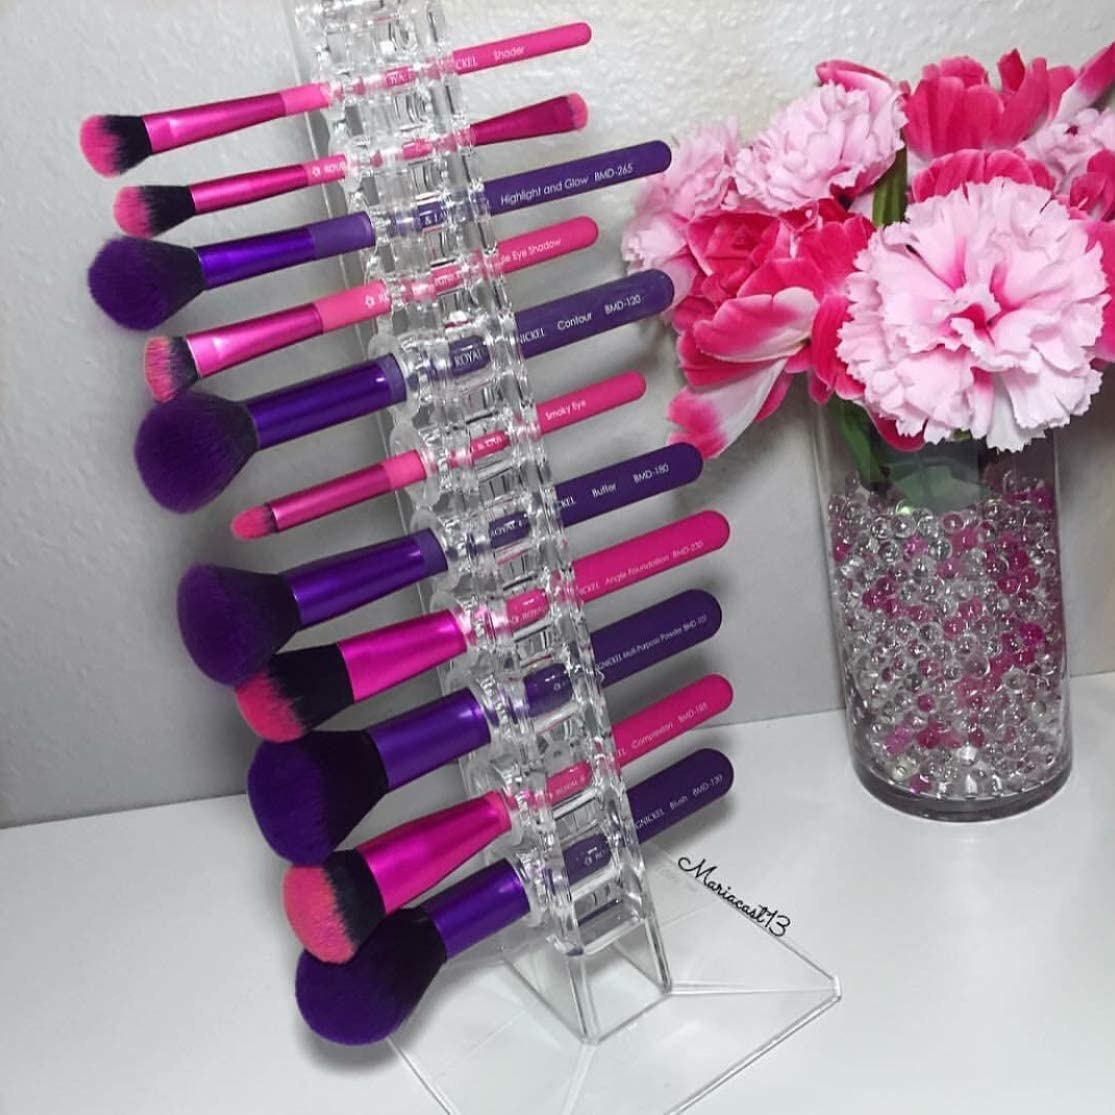 The brush stand filled with makeup brushes